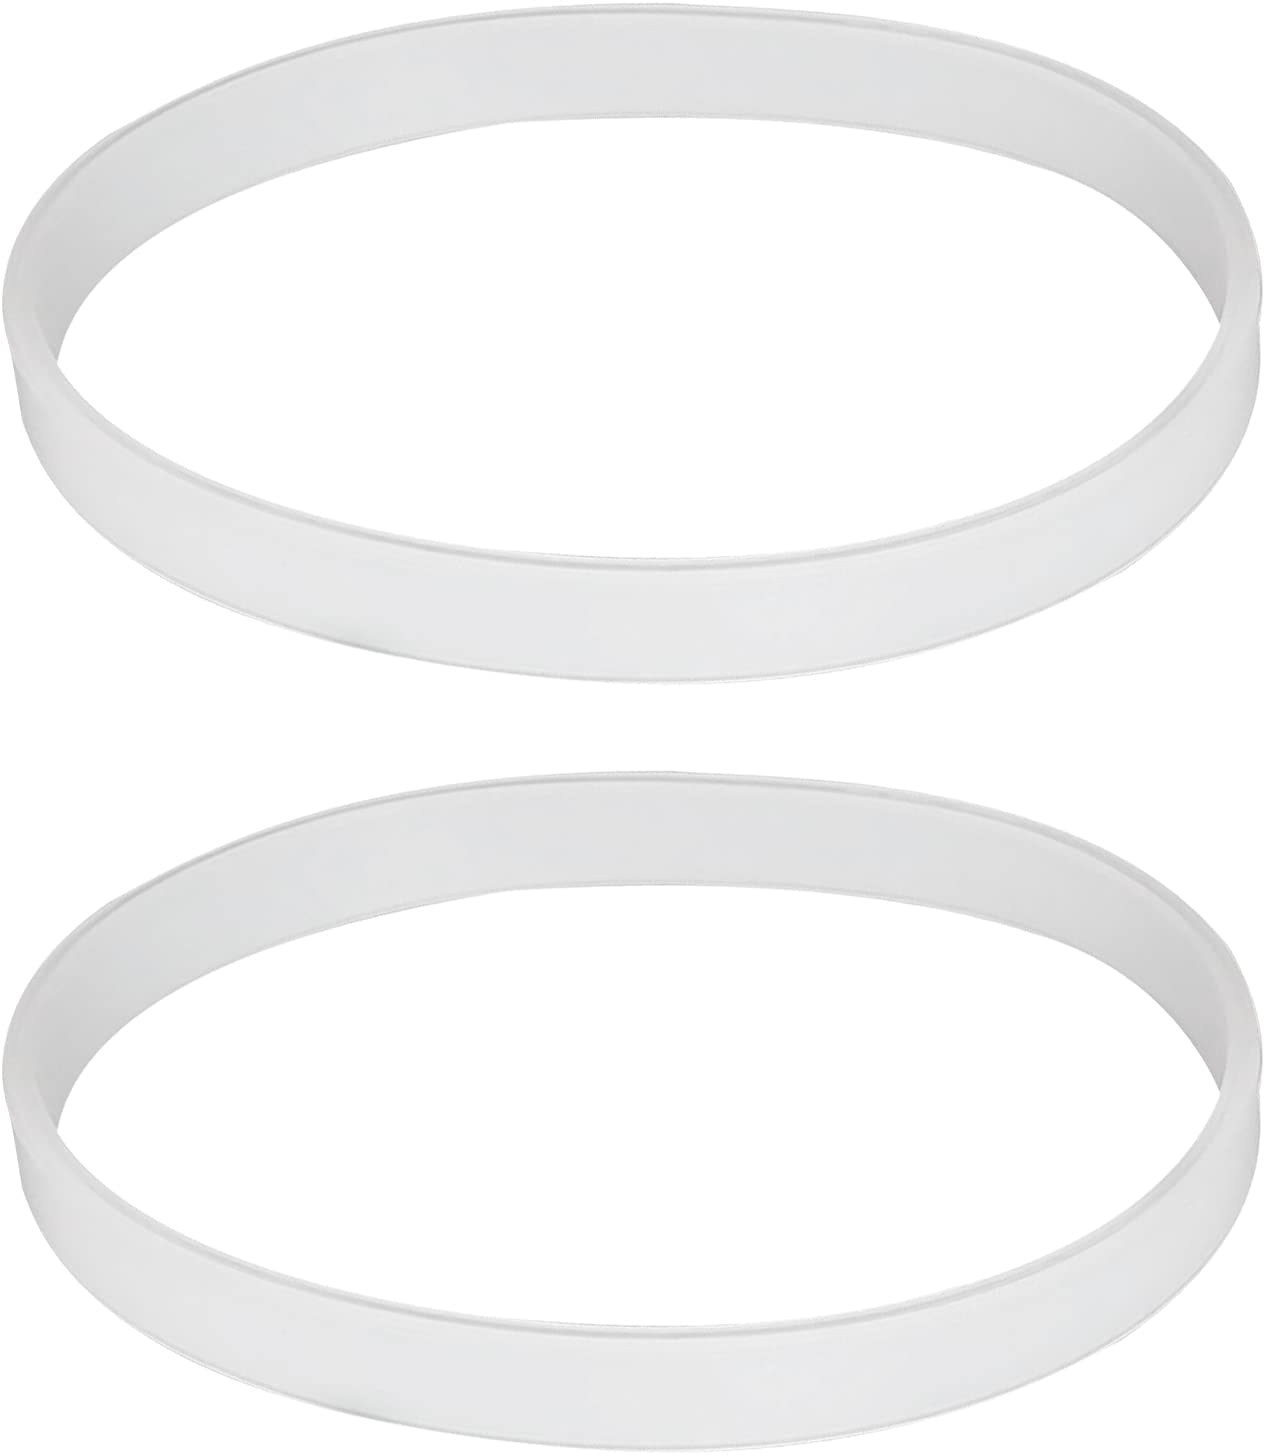 (2 Pack) Premium Blender Gaskets, Compatible with Ninja Blender Replacement Parts